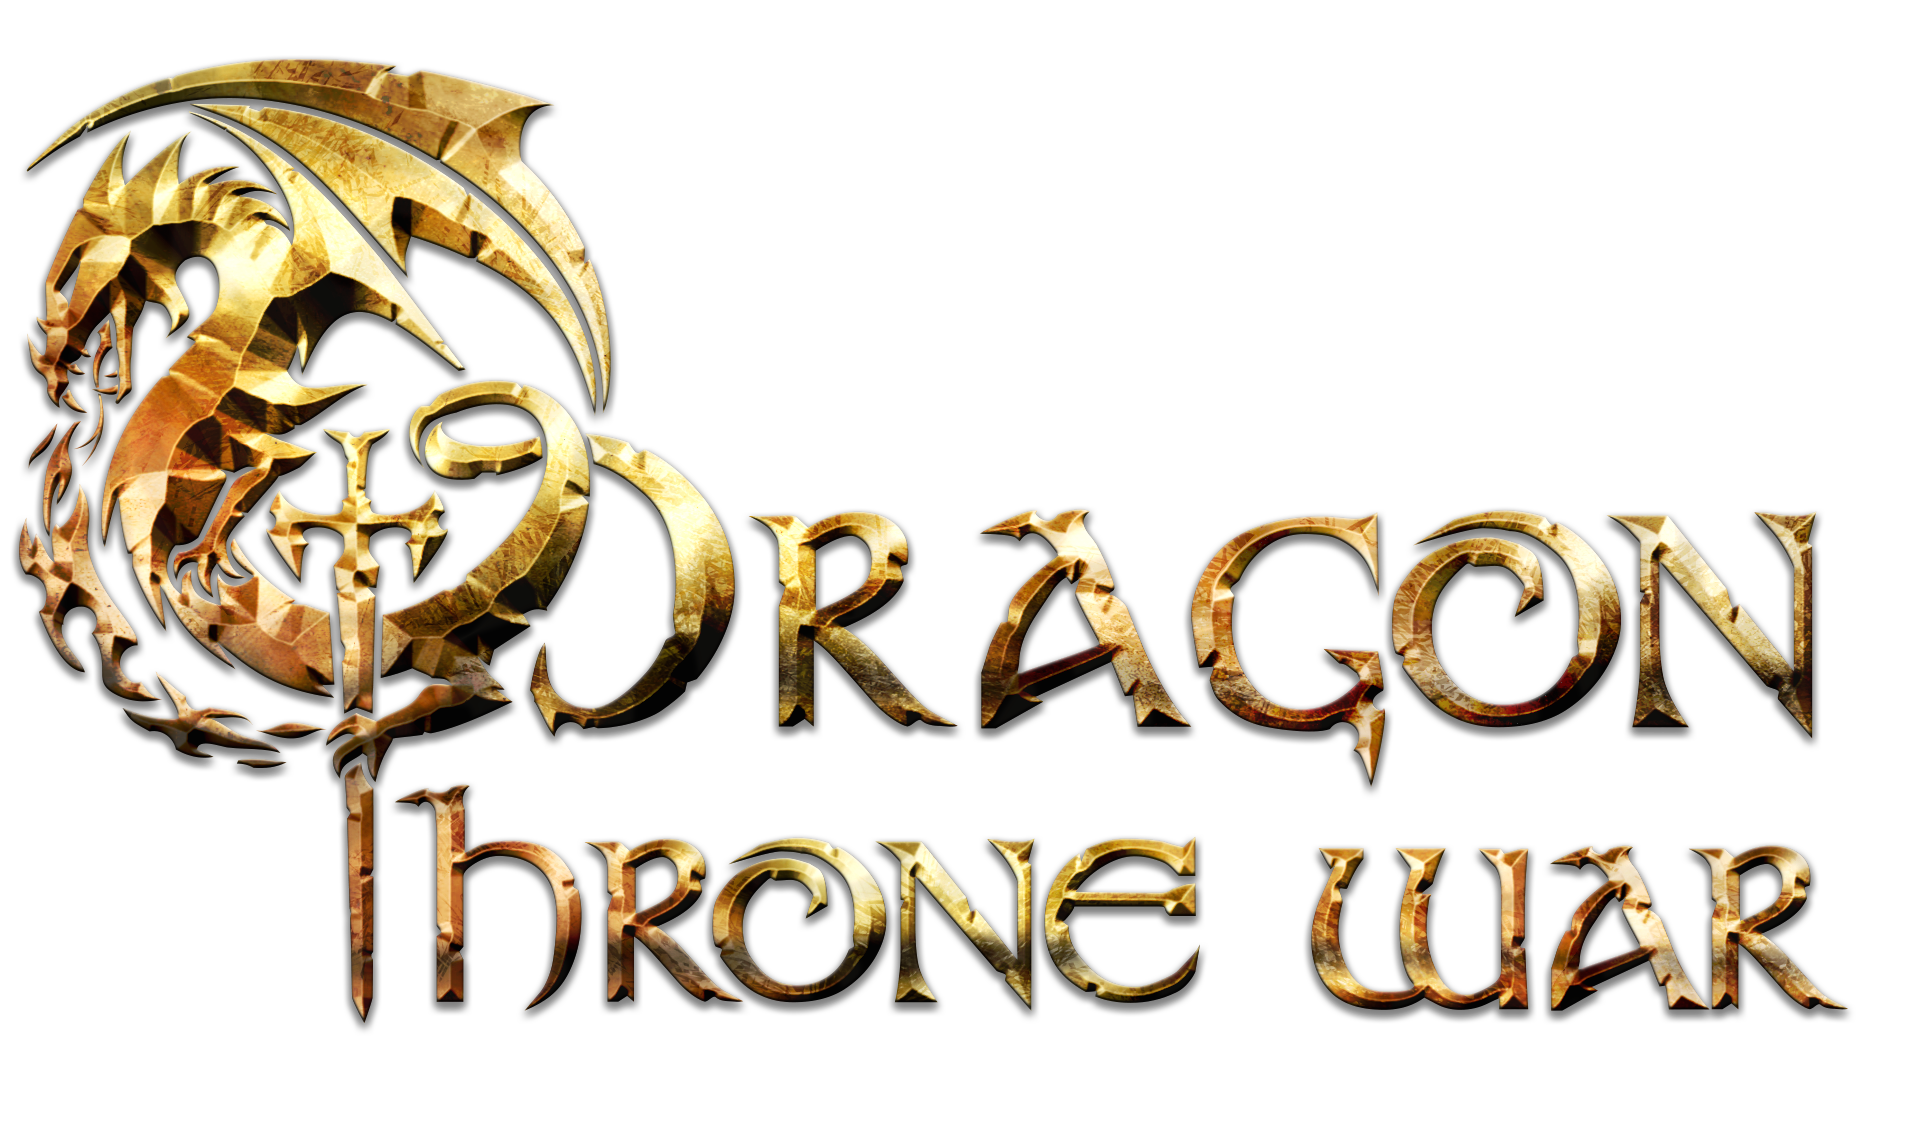 Logo di Dragon Throne War